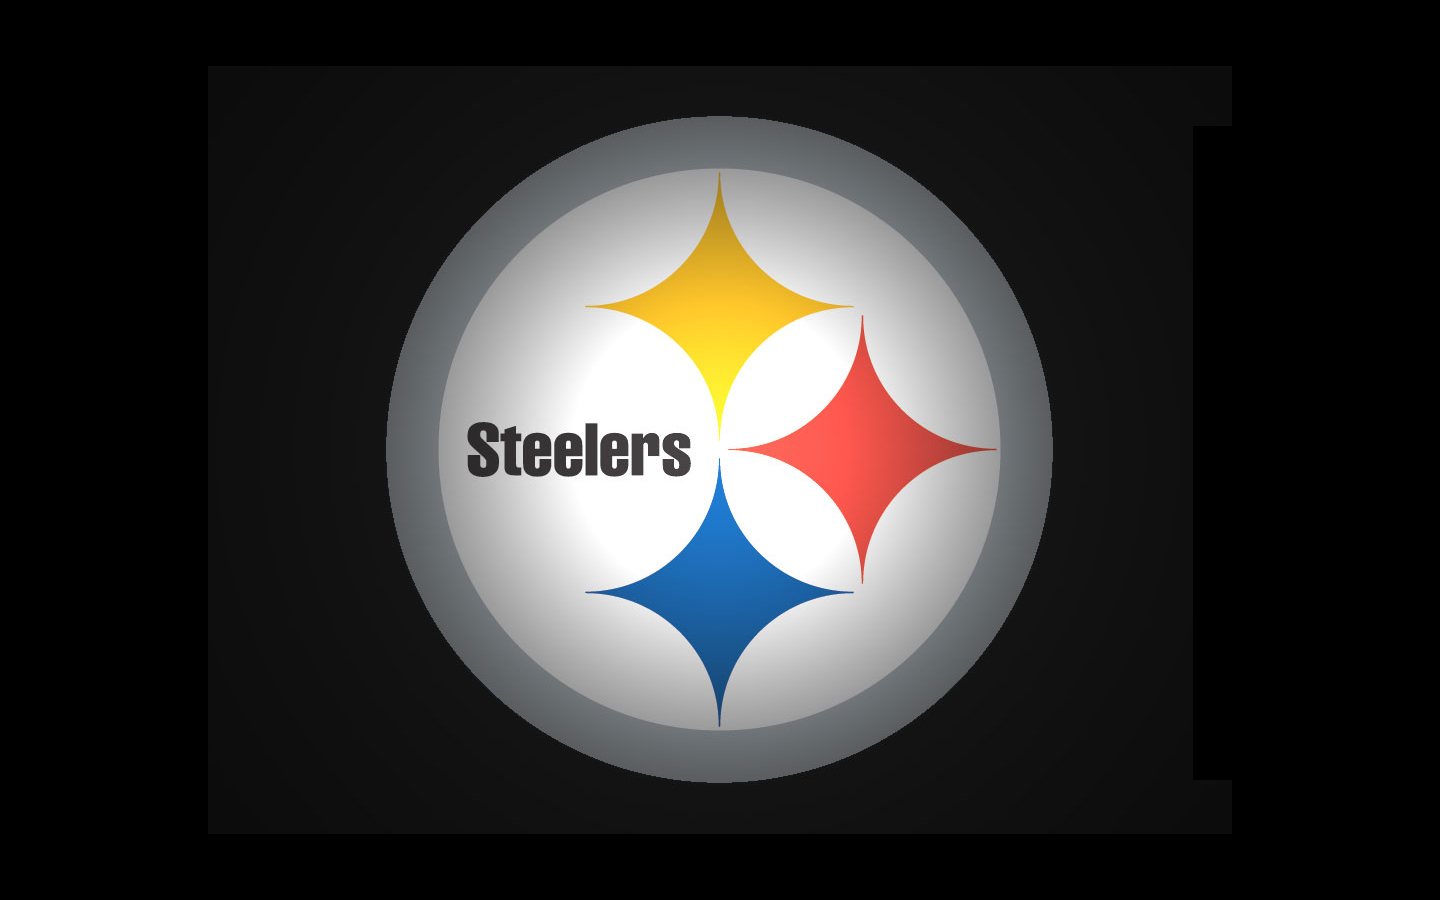 steelers-logo-6.jpg